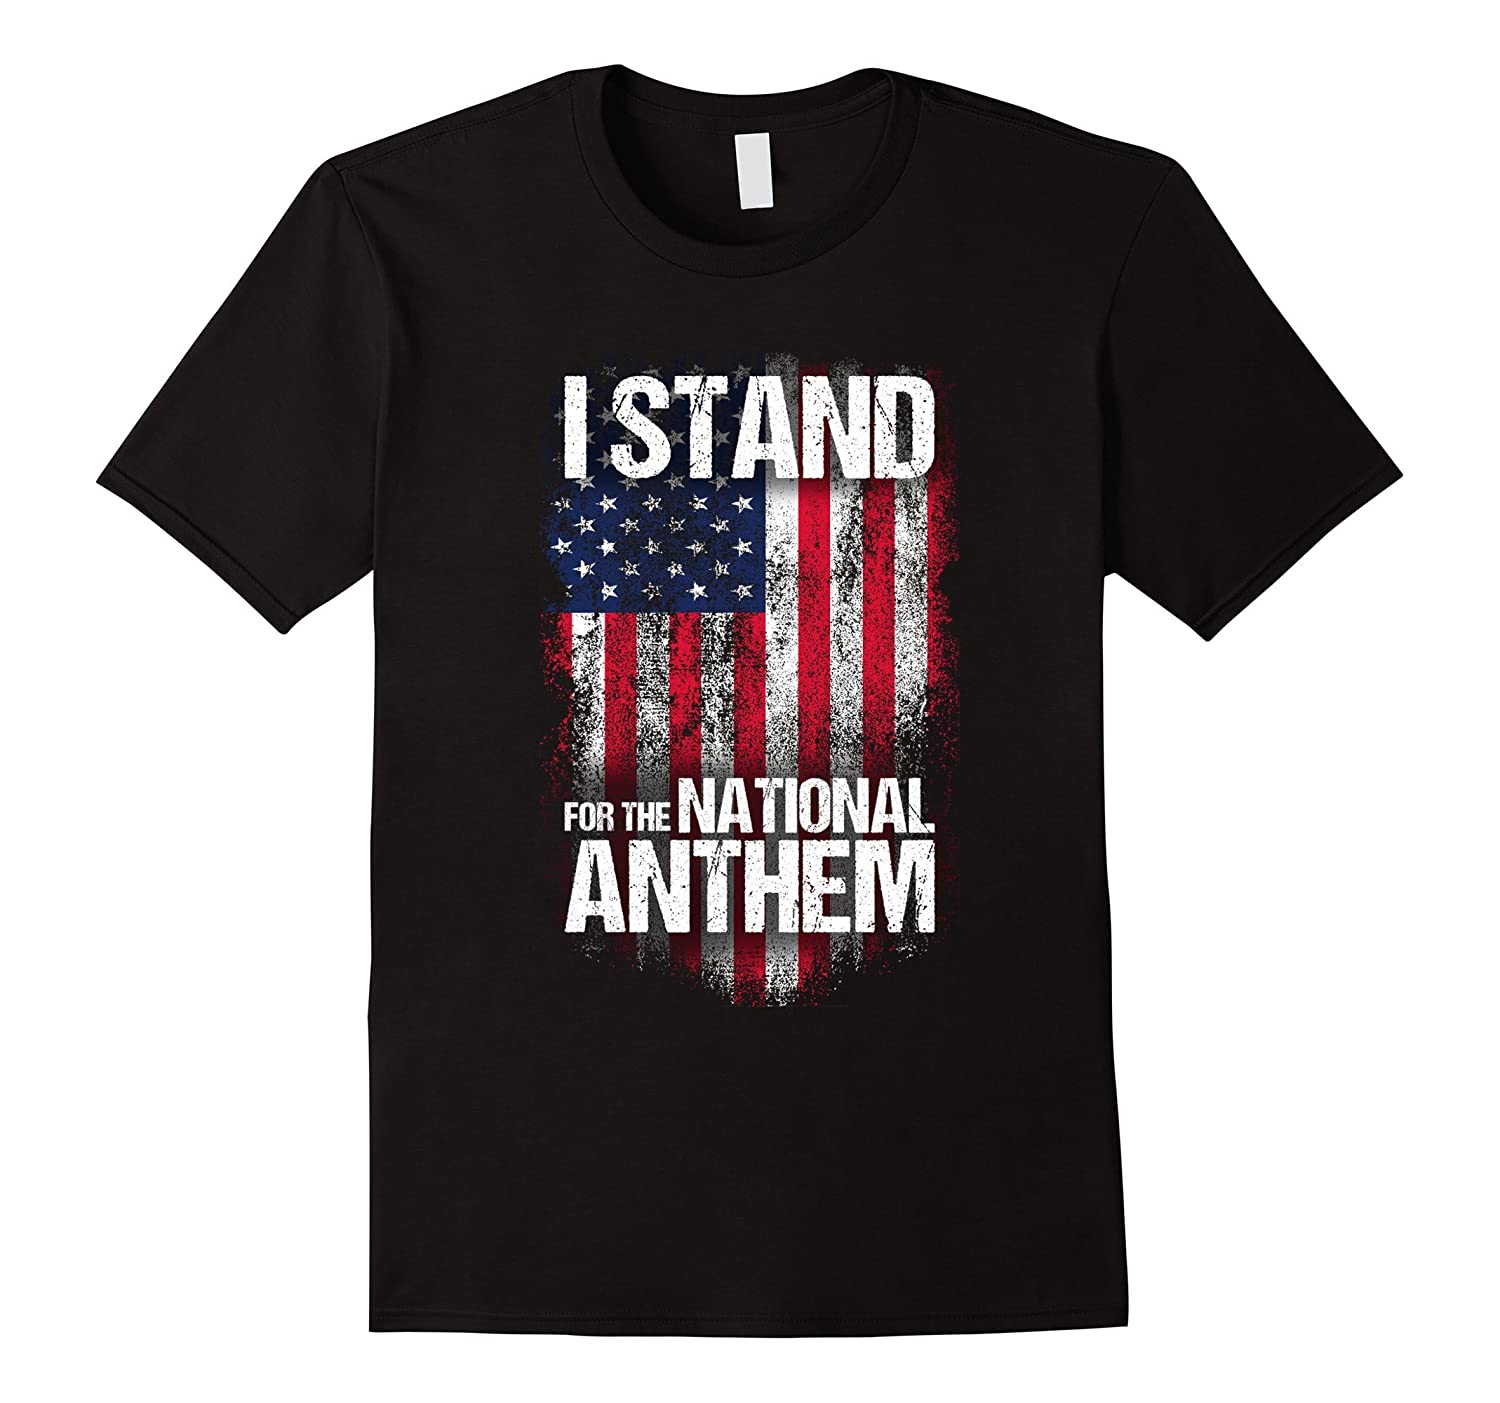 I Stand for the National Anthem T-shirt, Distressed USA Flag-T-Shirt